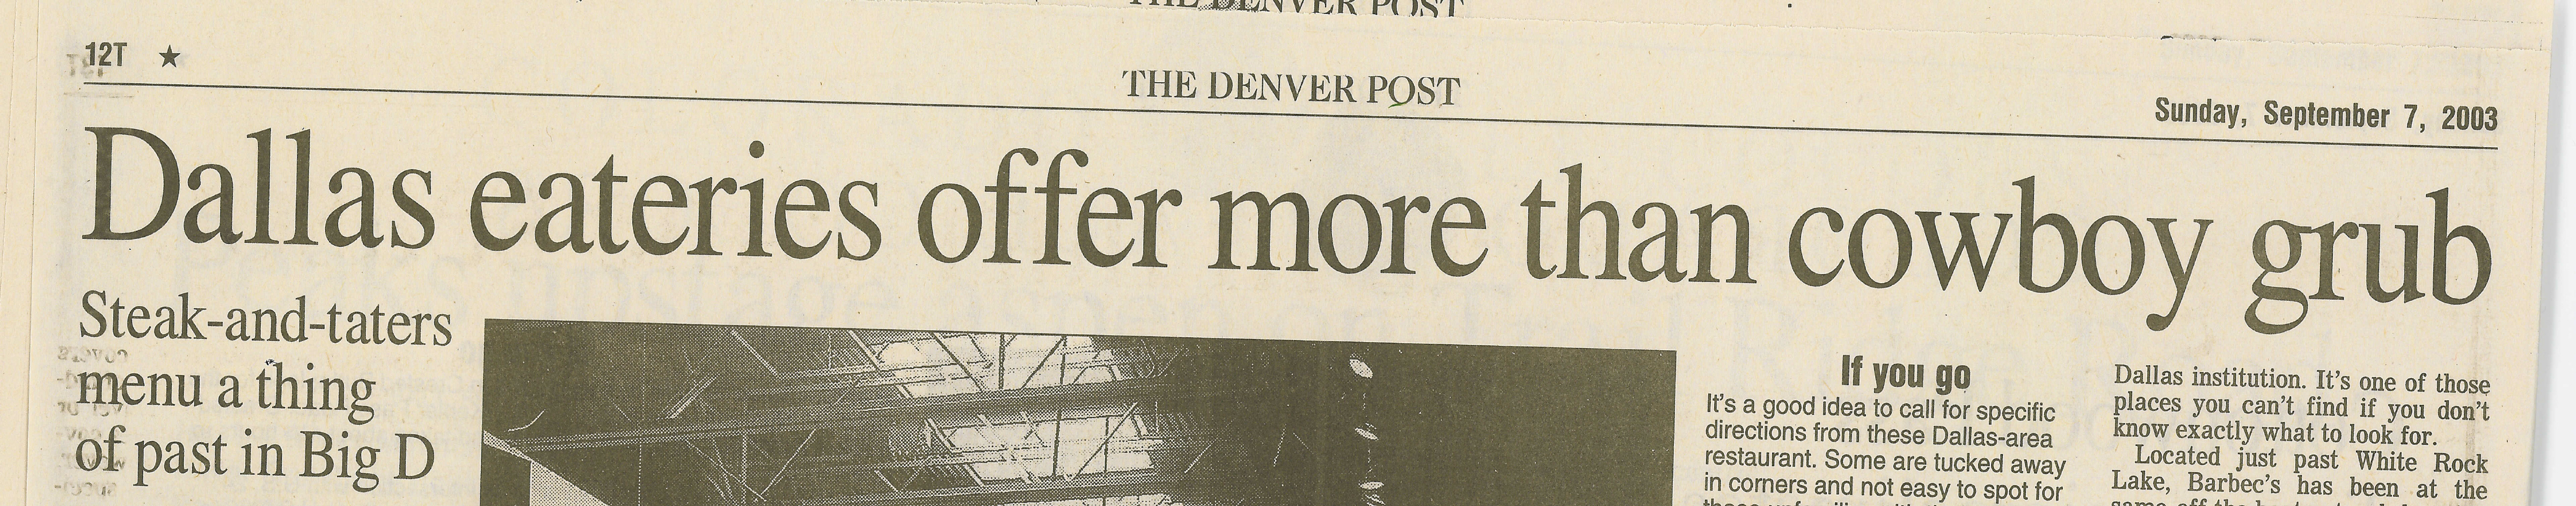 42 Denver Post Title